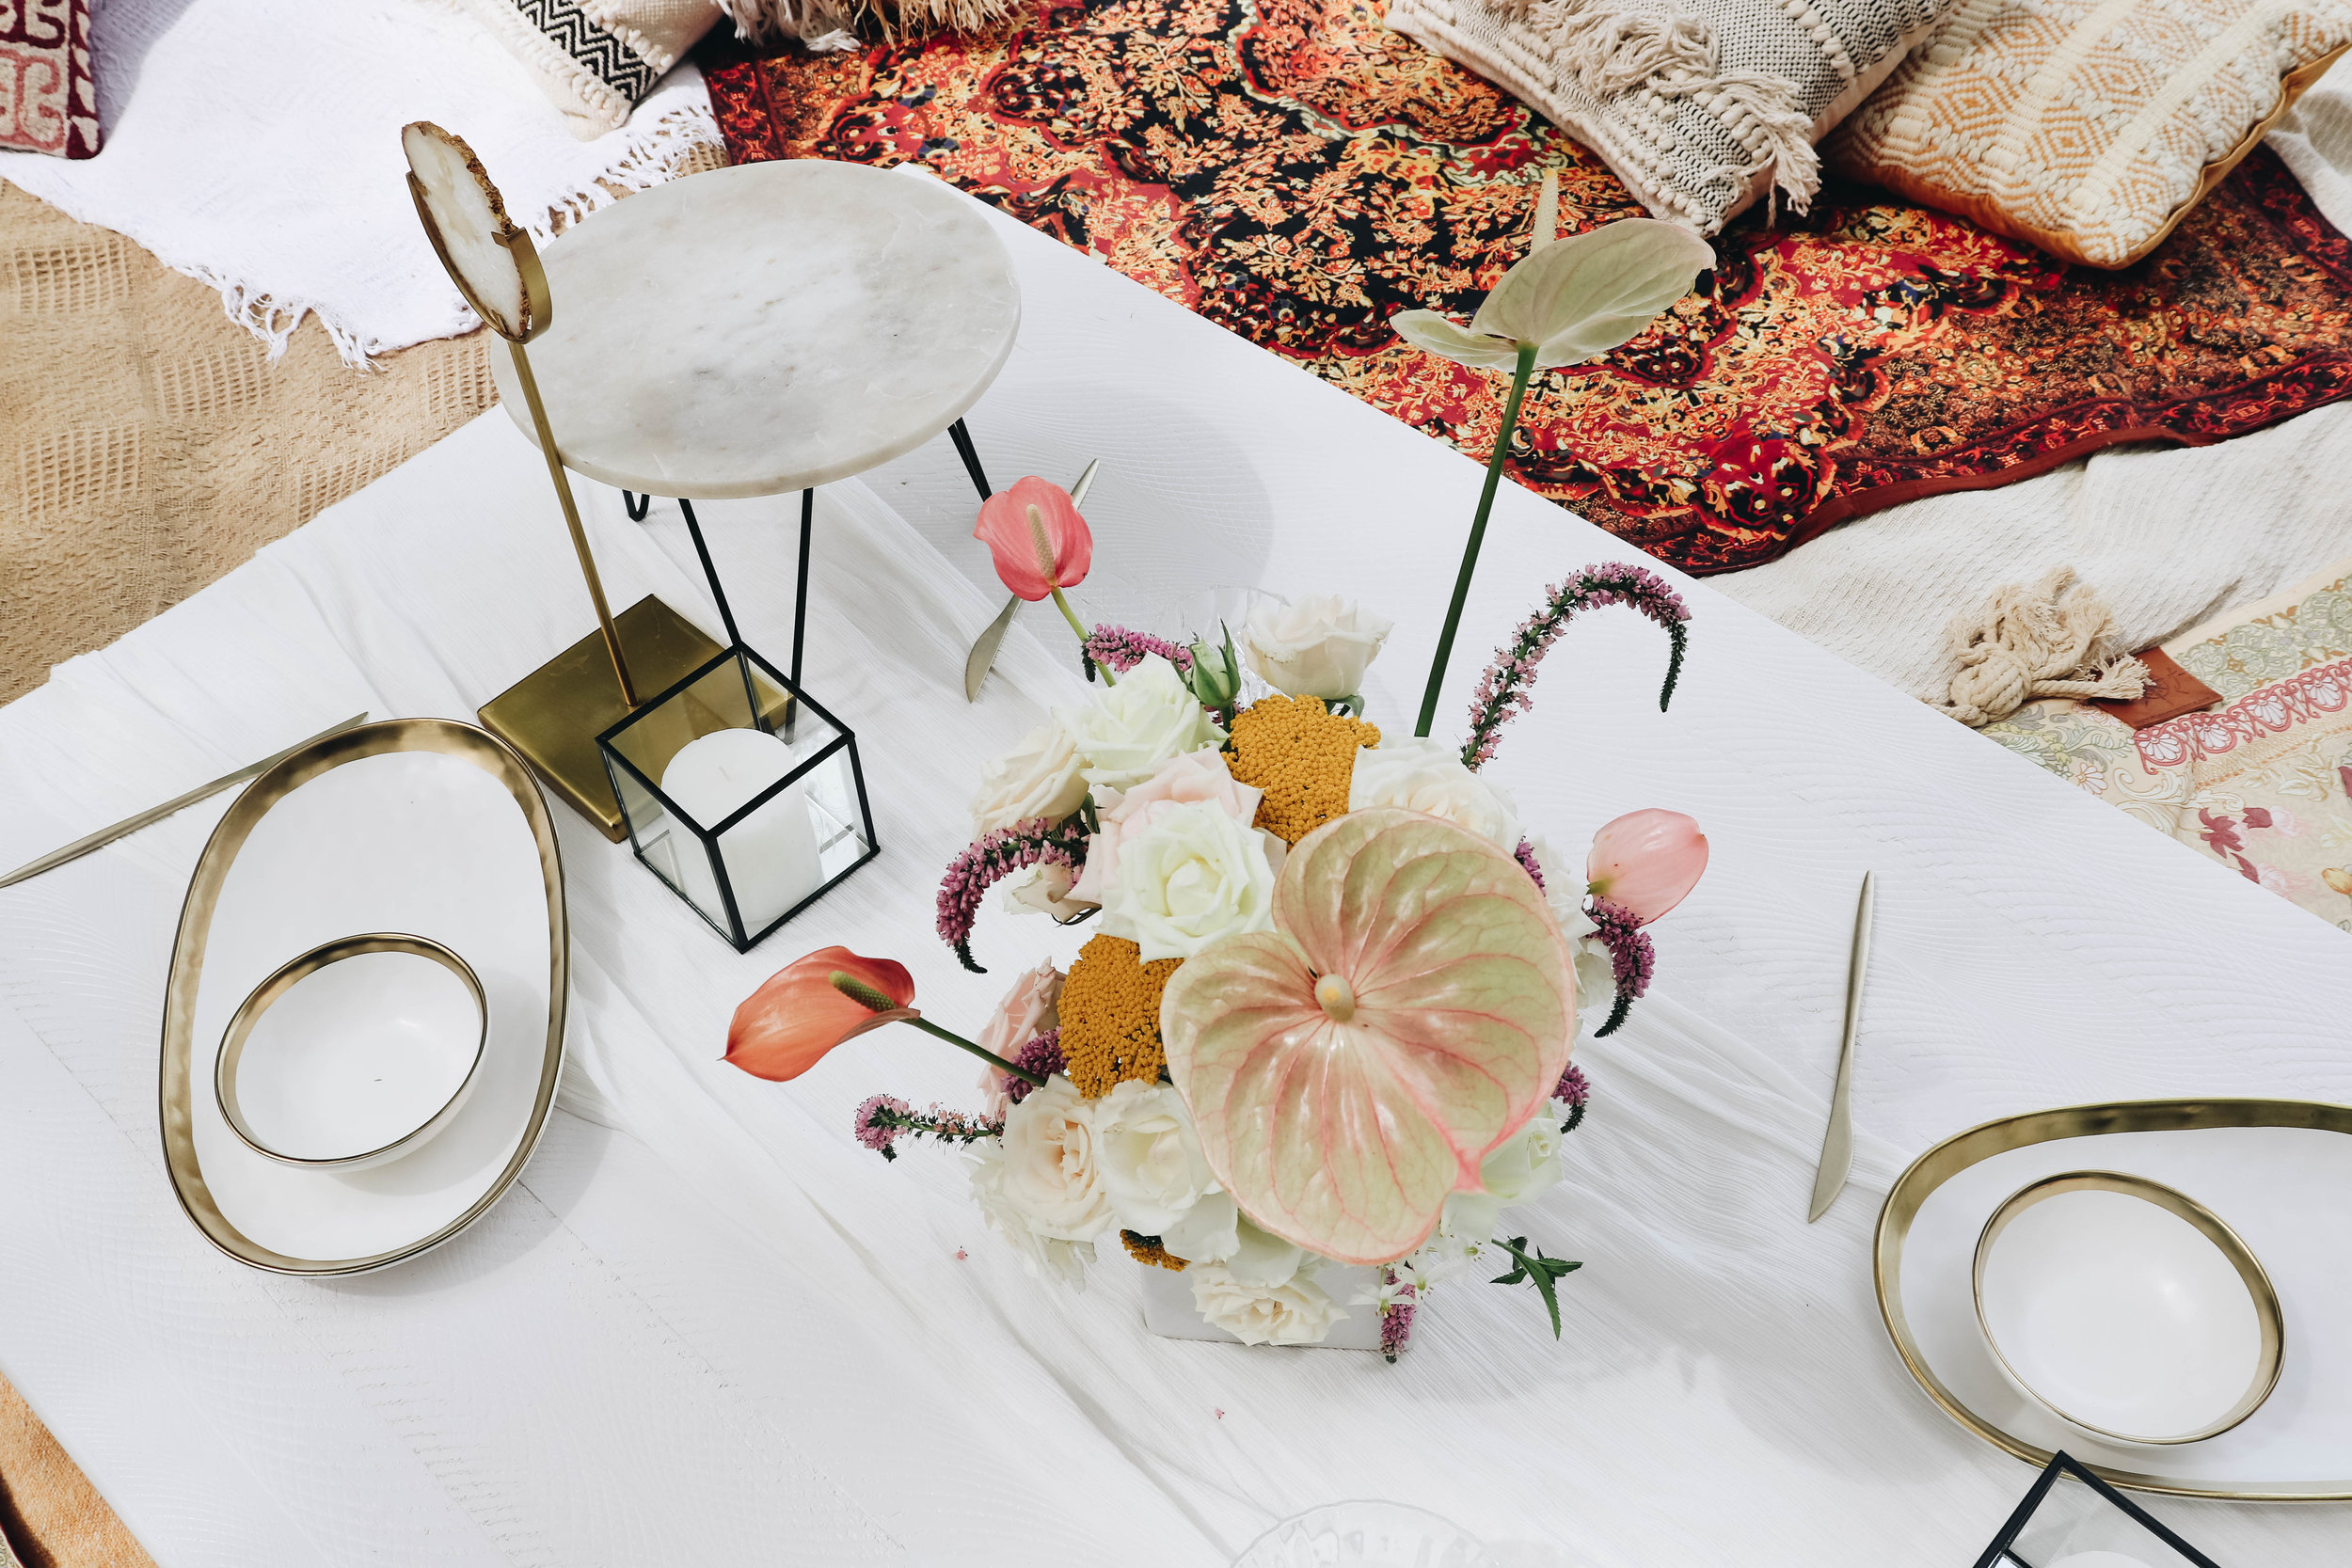 The_Collection_Co_ Styling_Tablescape_style_eventplanner_eventstyler_table_setting_cotton_blooms_cairns_luxe_wedding_coral_tablewear_pink_placemats_design_candles_eventhirecairns_fnqwedding-44.jpg